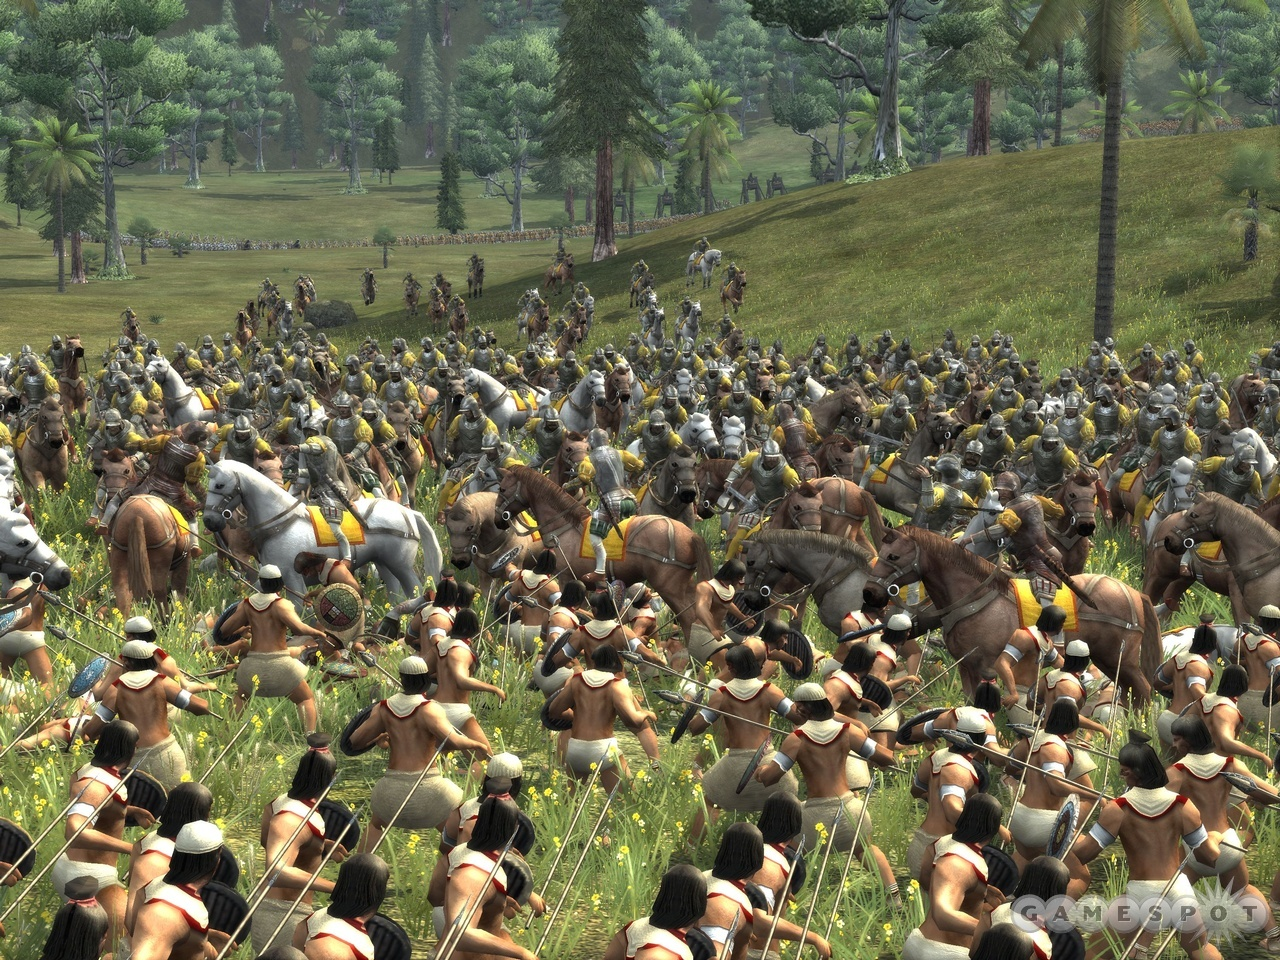 One of the biggest strategy games of 2006 is about to get bigger.